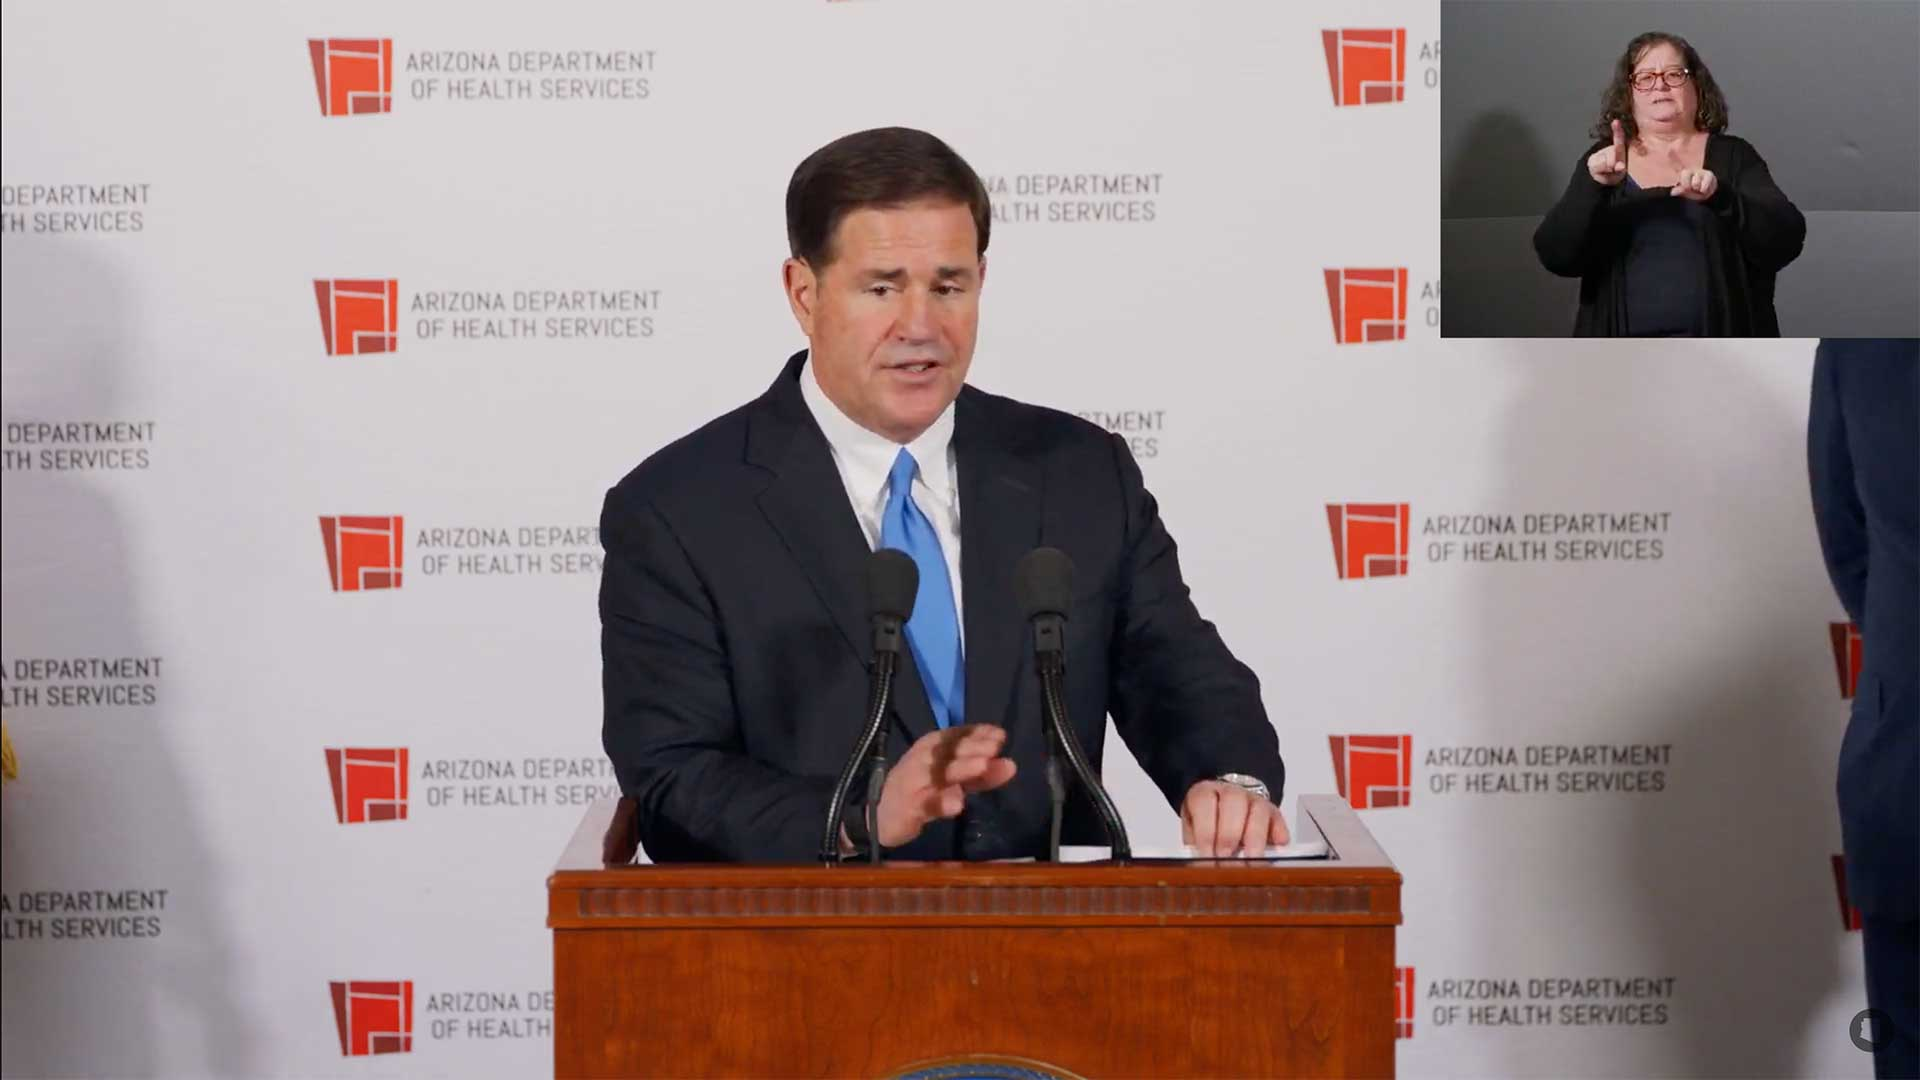 Arizona Gov. Doug Ducey delivers an address about the state's COVID-19 response Dec. 2, 2020.